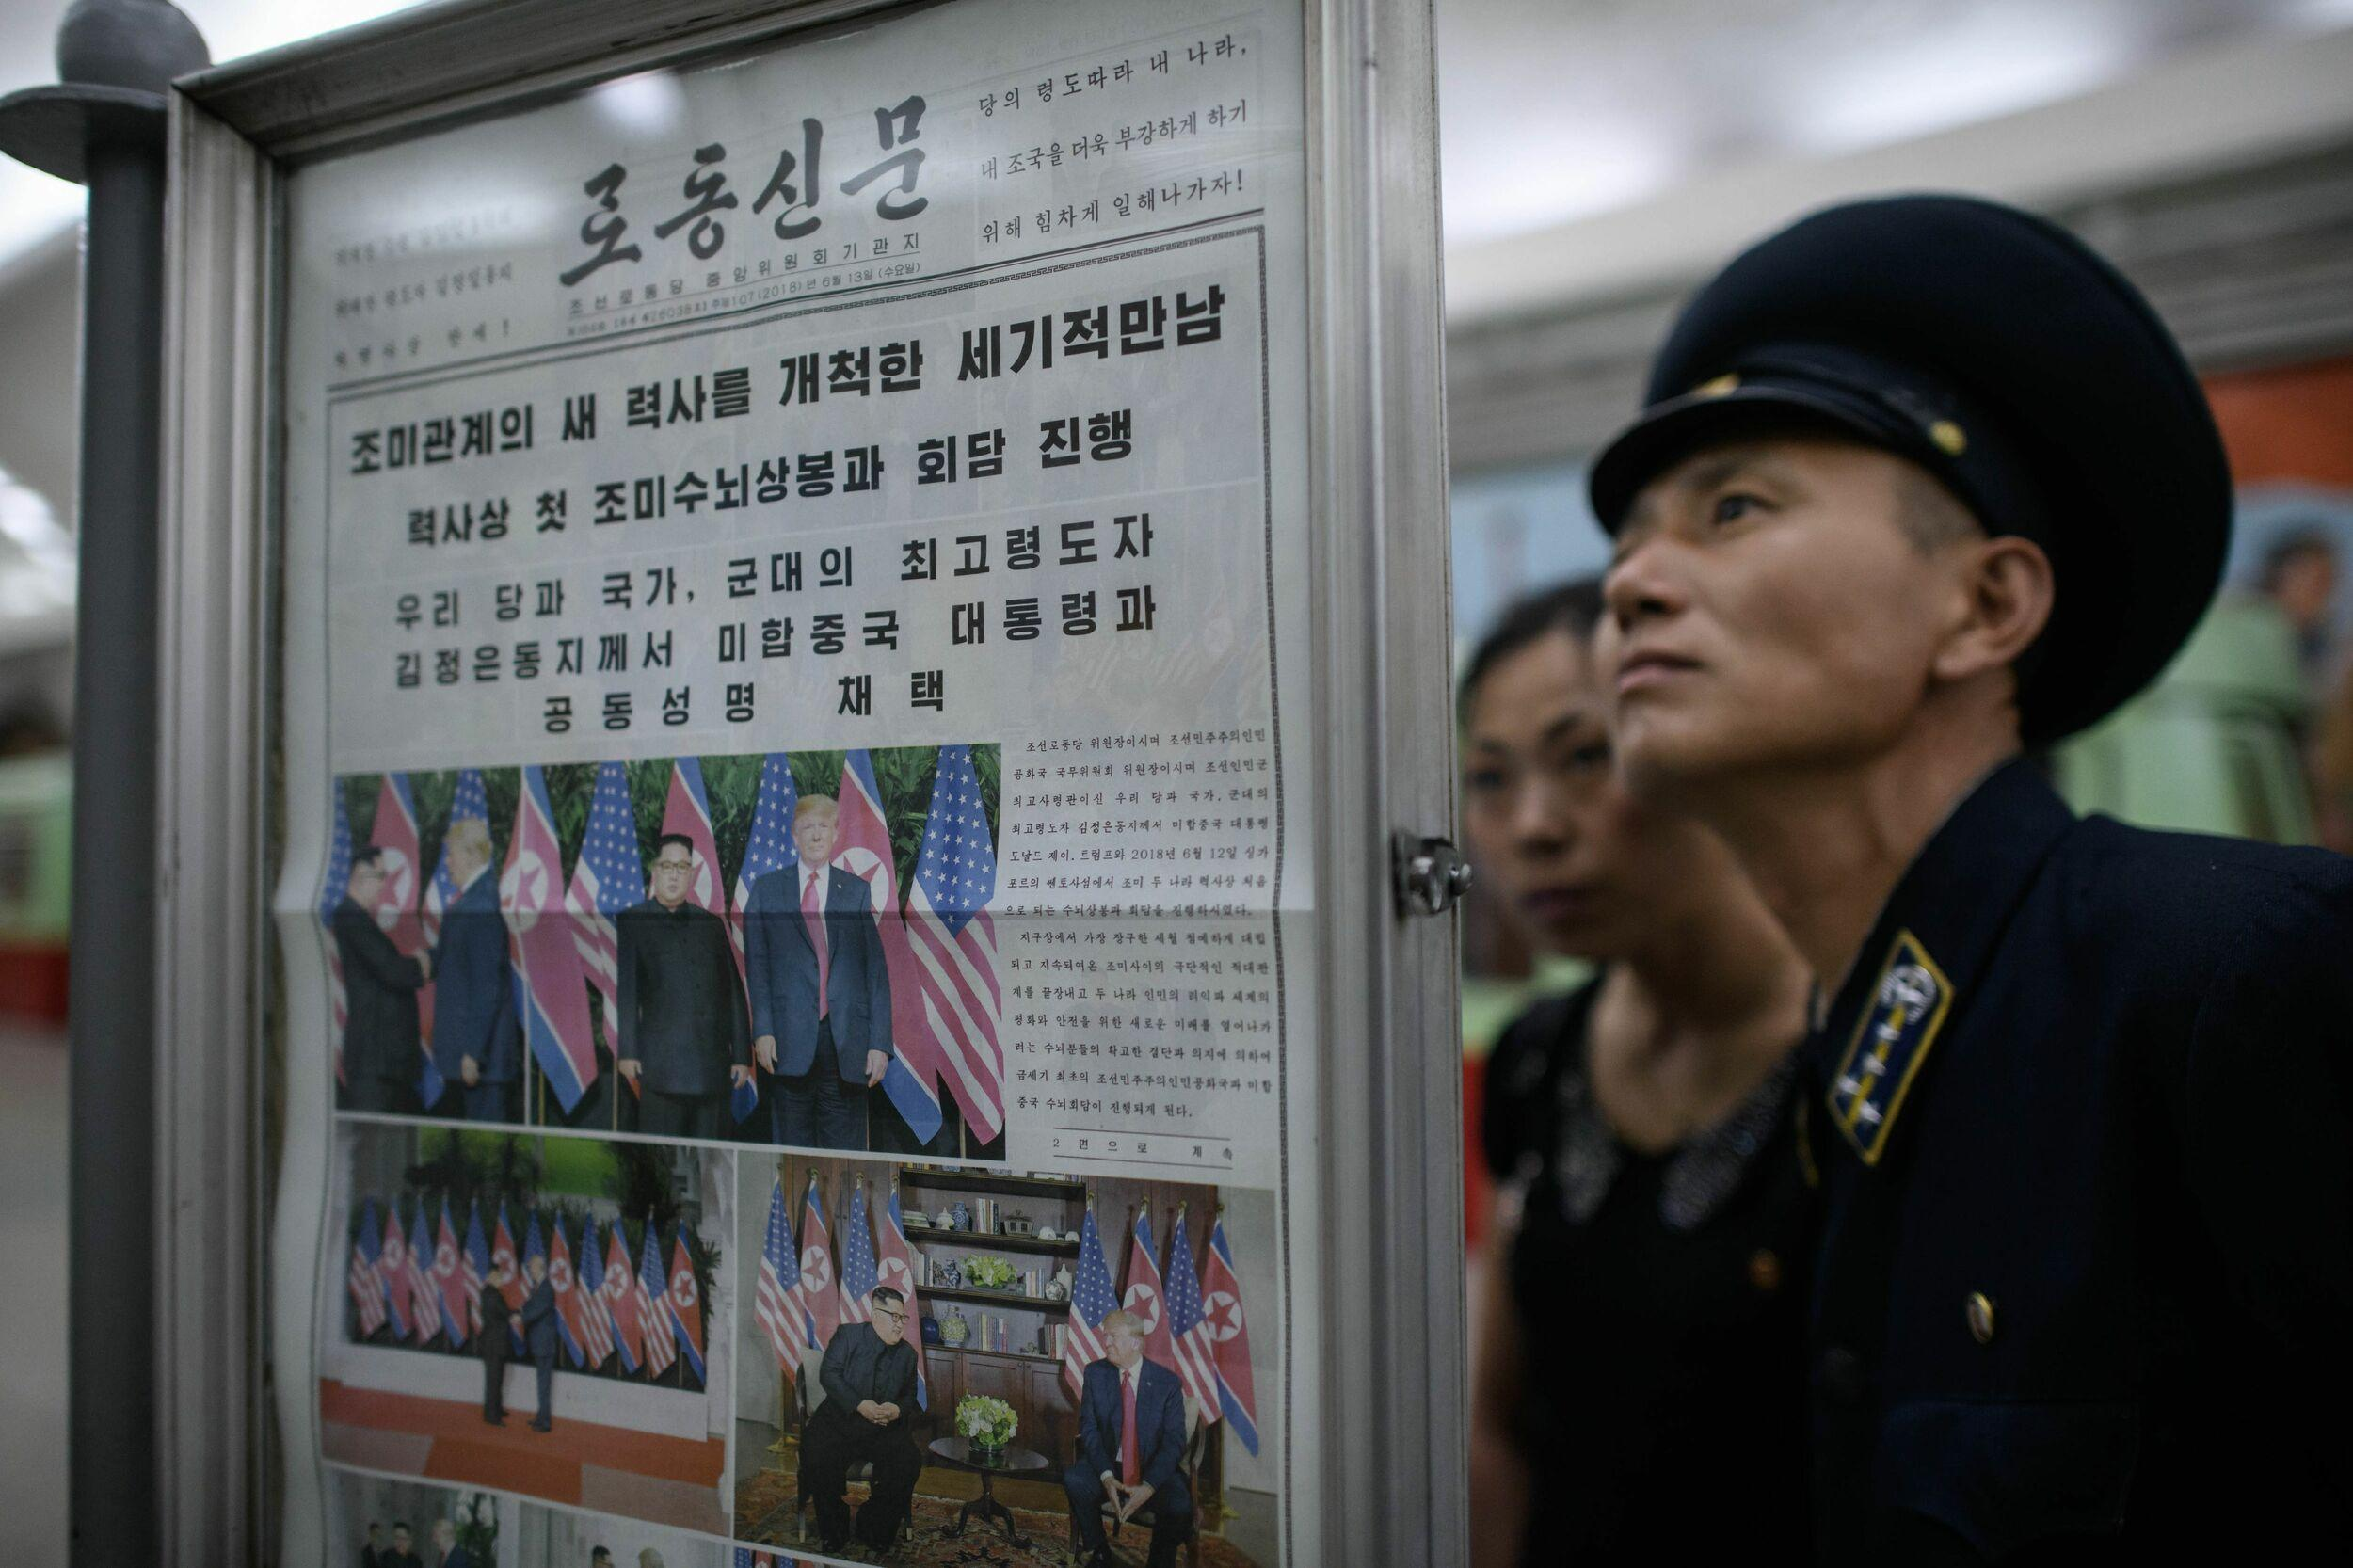 TOPSHOT - A conductor reads the latest edition of the Rodong Sinmun newspaper showing images of North Korean leader Kim Jong Un meeting with US president Donald Trump during their summit in Singapore, at a news stand on a subway platform of the Pyongyang metro on June 13, 2018. - Donald Trump accepted an invitation from Kim Jong Un to visit North Korea during their historic summit, Pyongyang state media reported on June 13, as the US president said the world had jumped back from the brink of 'nuclear catastrophe'. (Photo by Ed JONES / AFP)        (Photo credit should read ED JONES/AFP/Getty Images)